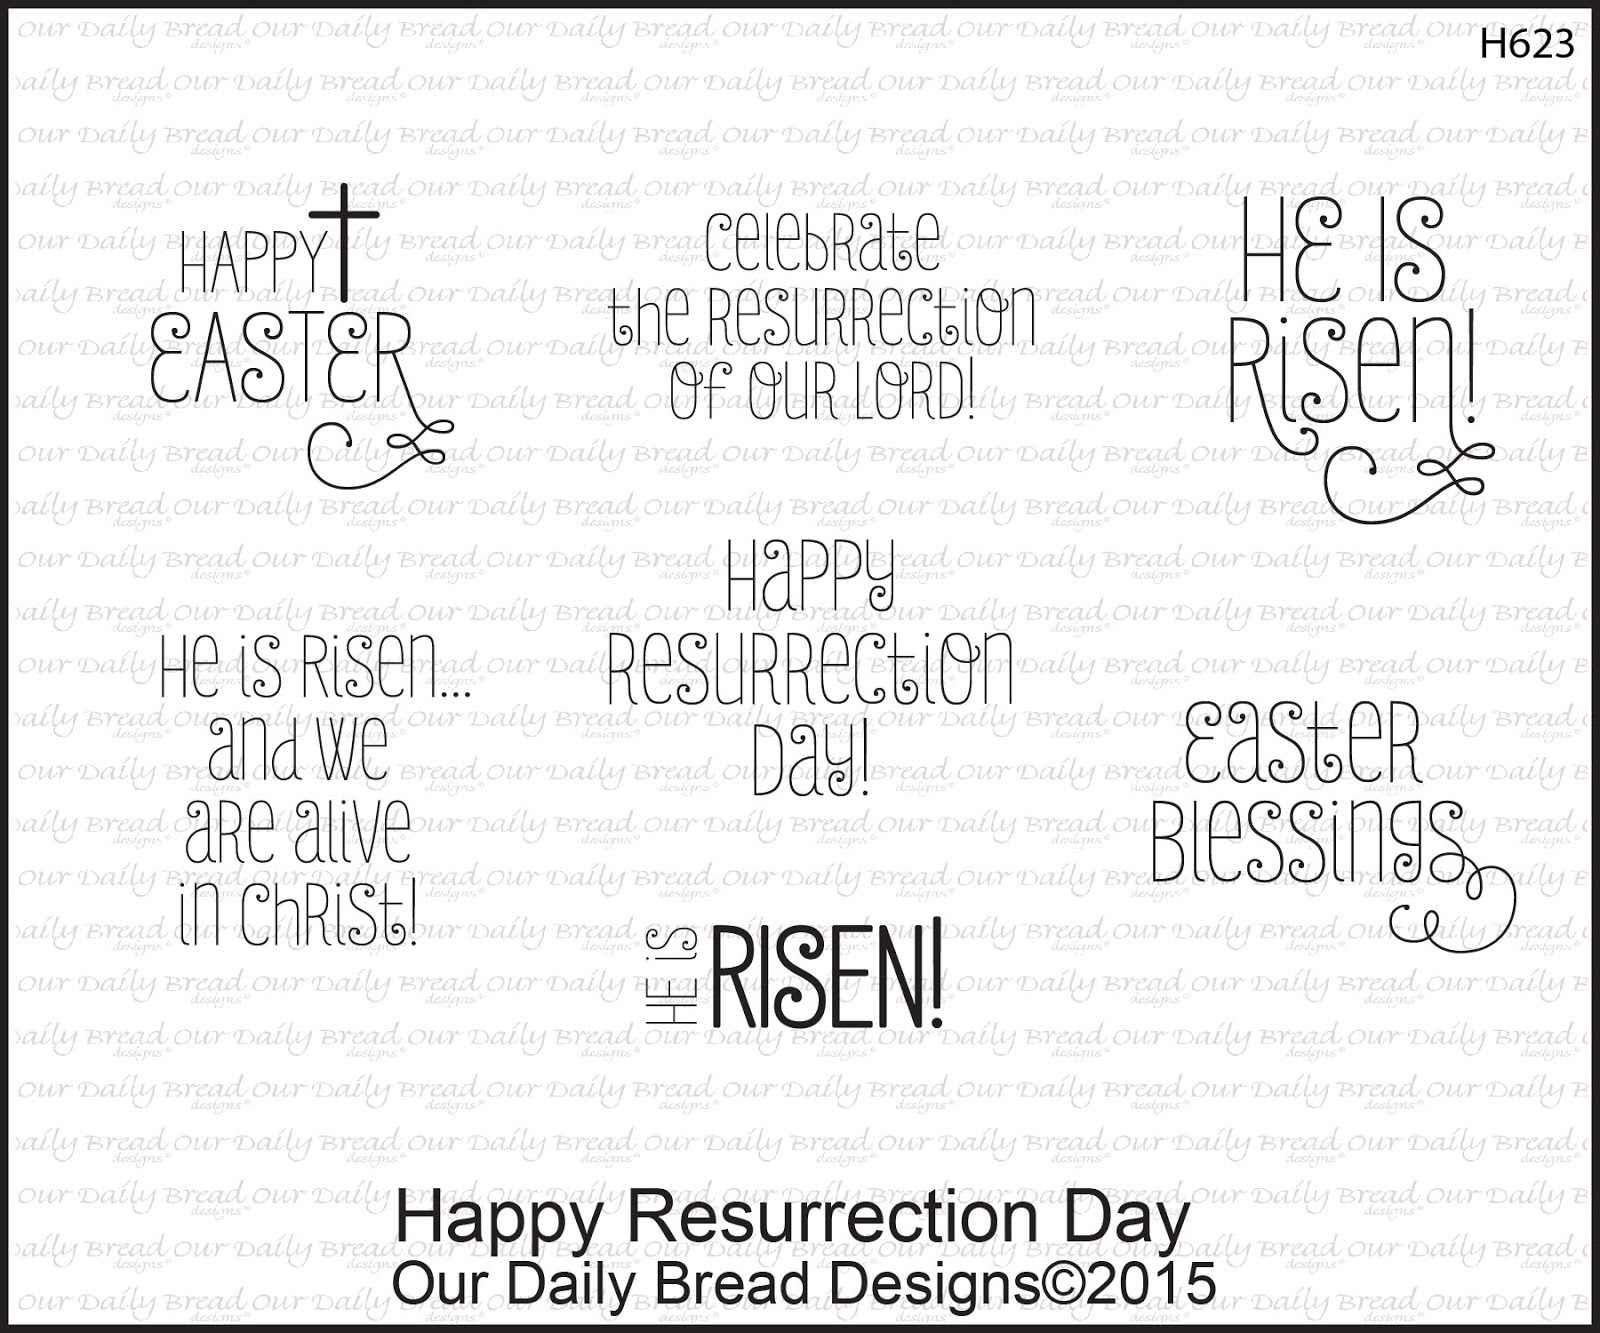 Stamps - Our Daily Bread Designs Happy Resurrection Day